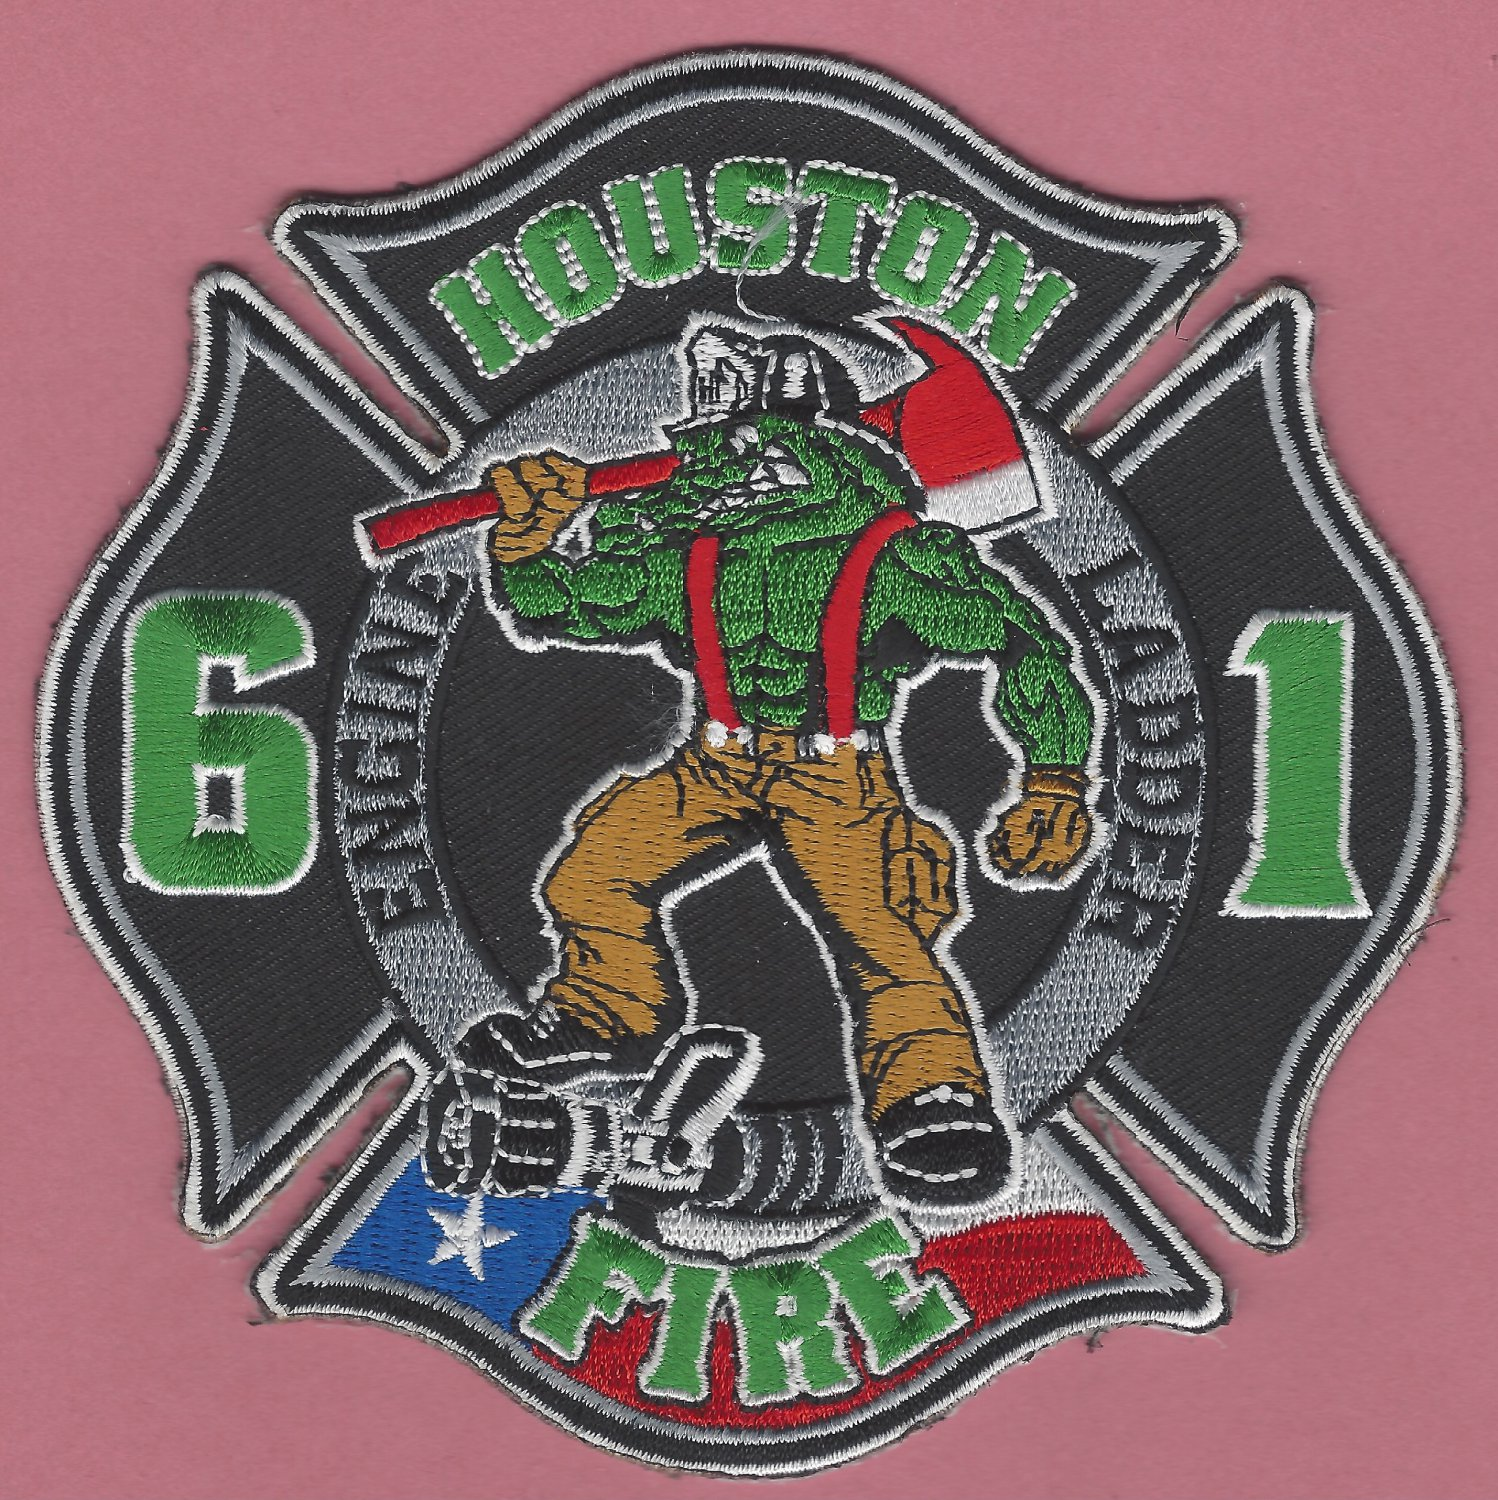 Houston Fire Department Station 61 Company Patch